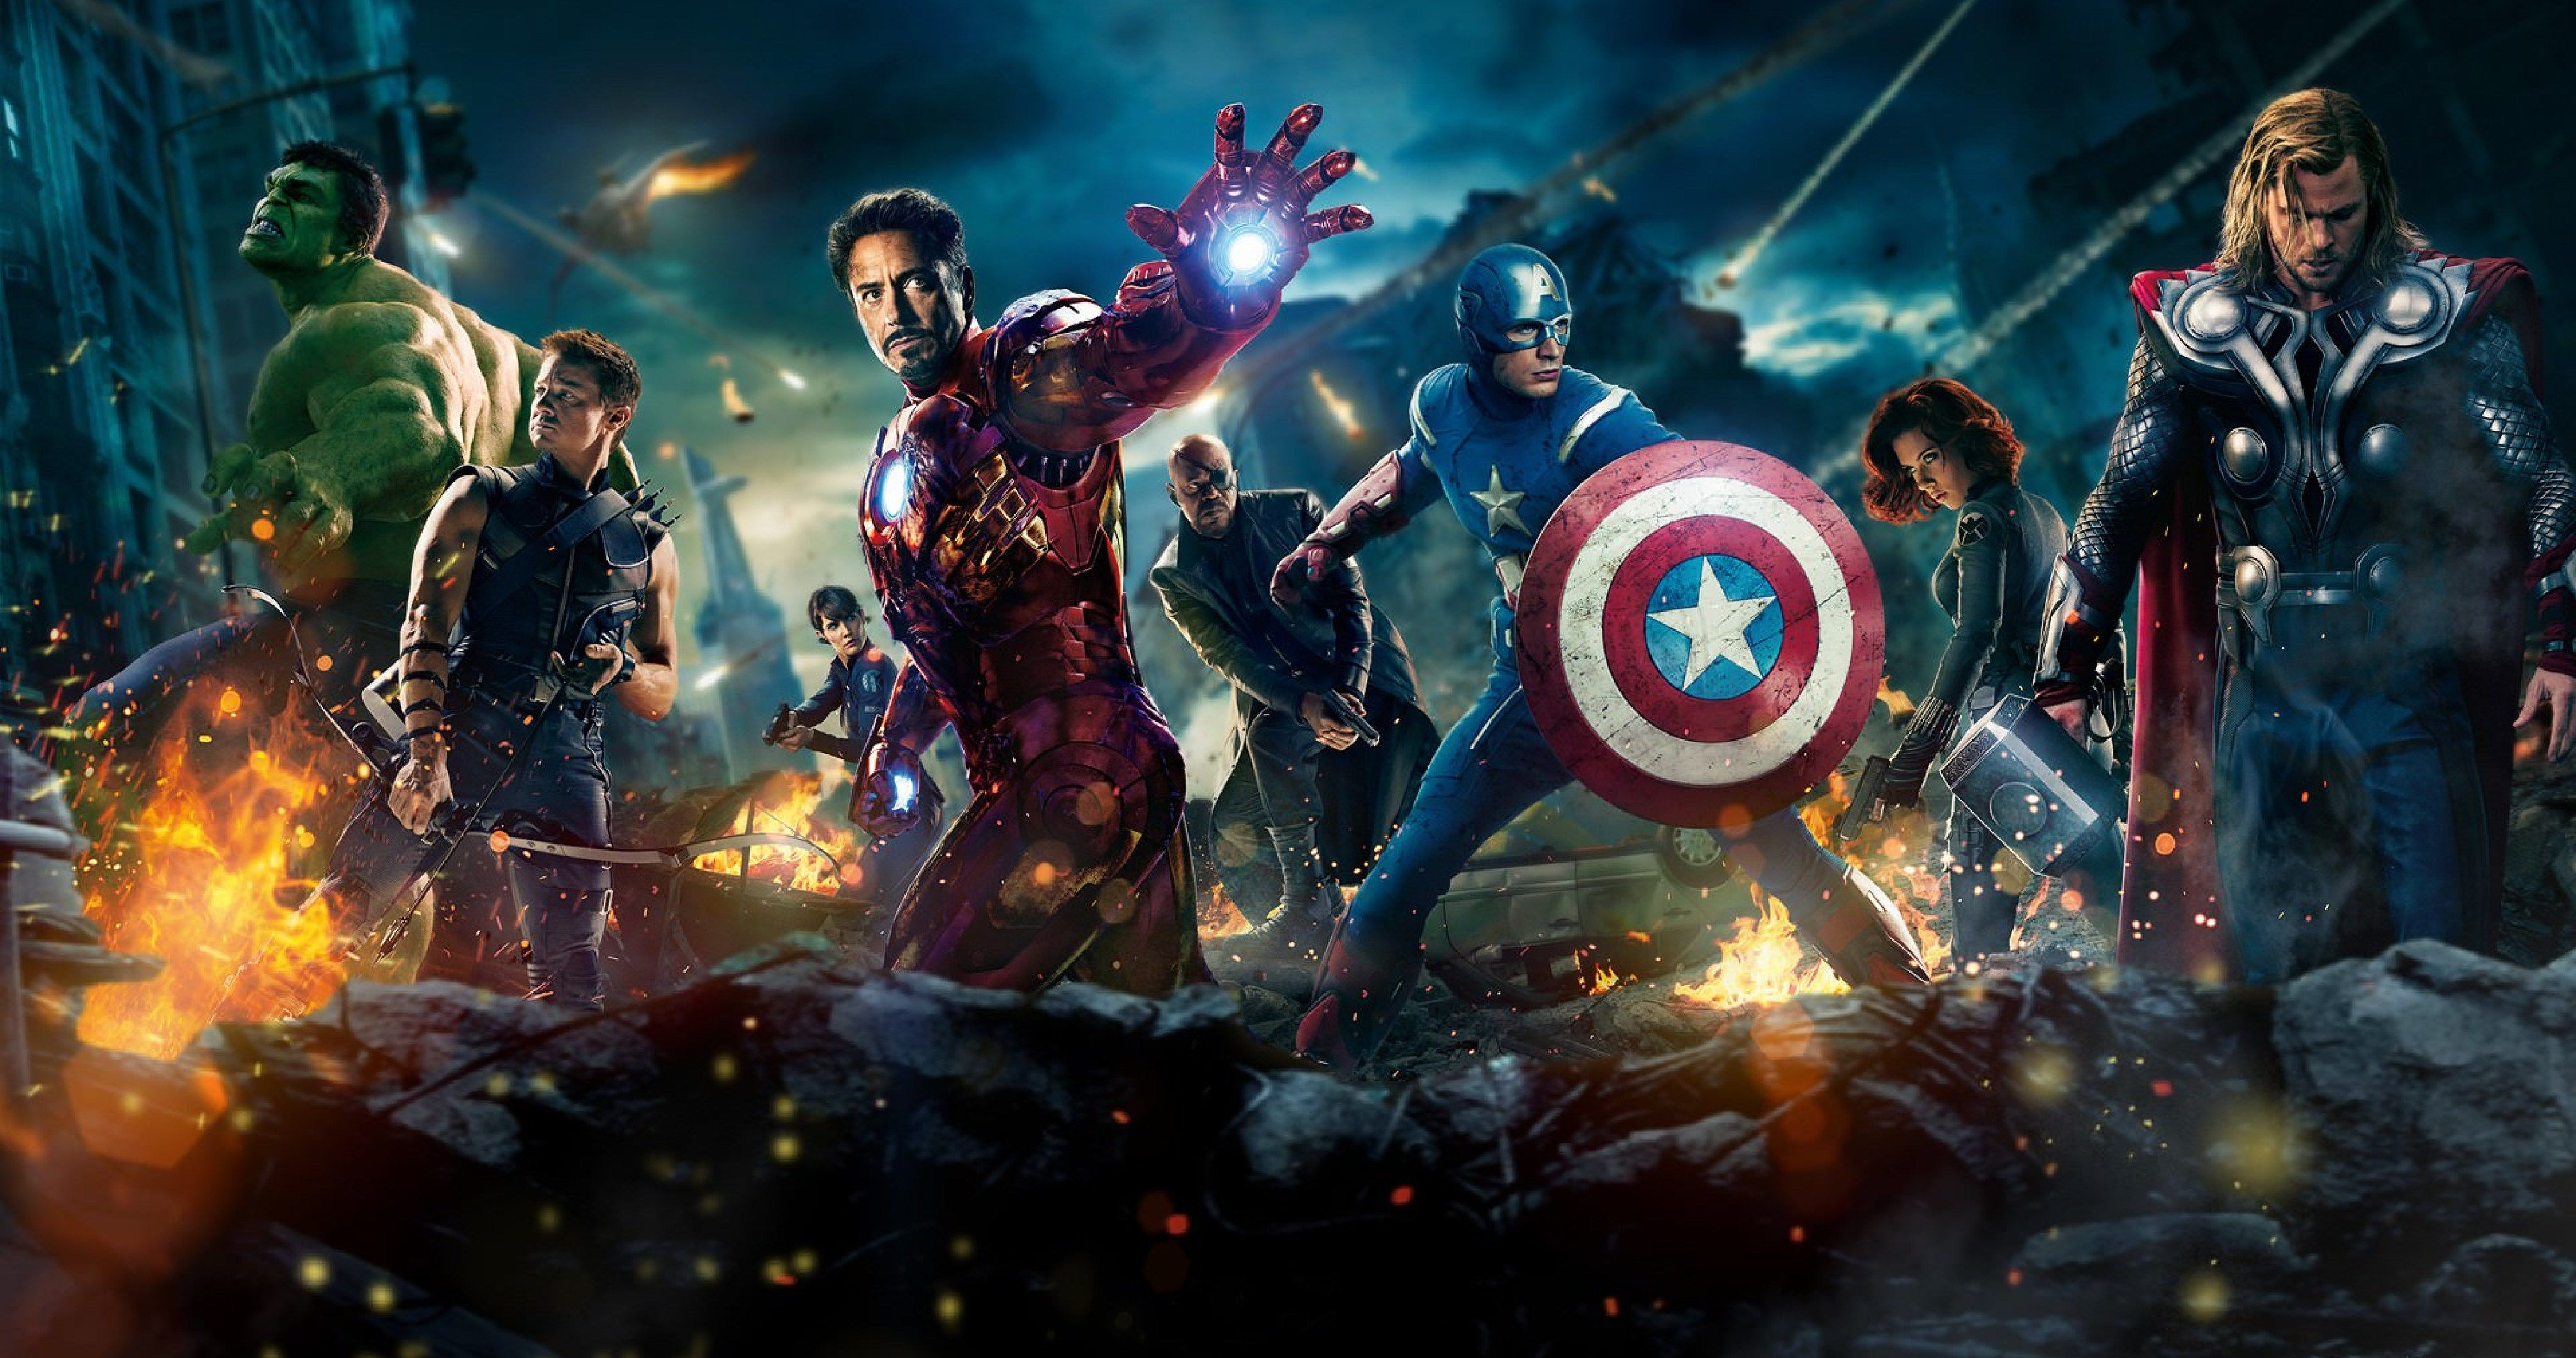 The Avengers Movie 2012 4k Ultra Hd Wallpaper Marvel Cinematic Universe Movies Avengers Movies Marvel Studios Movies